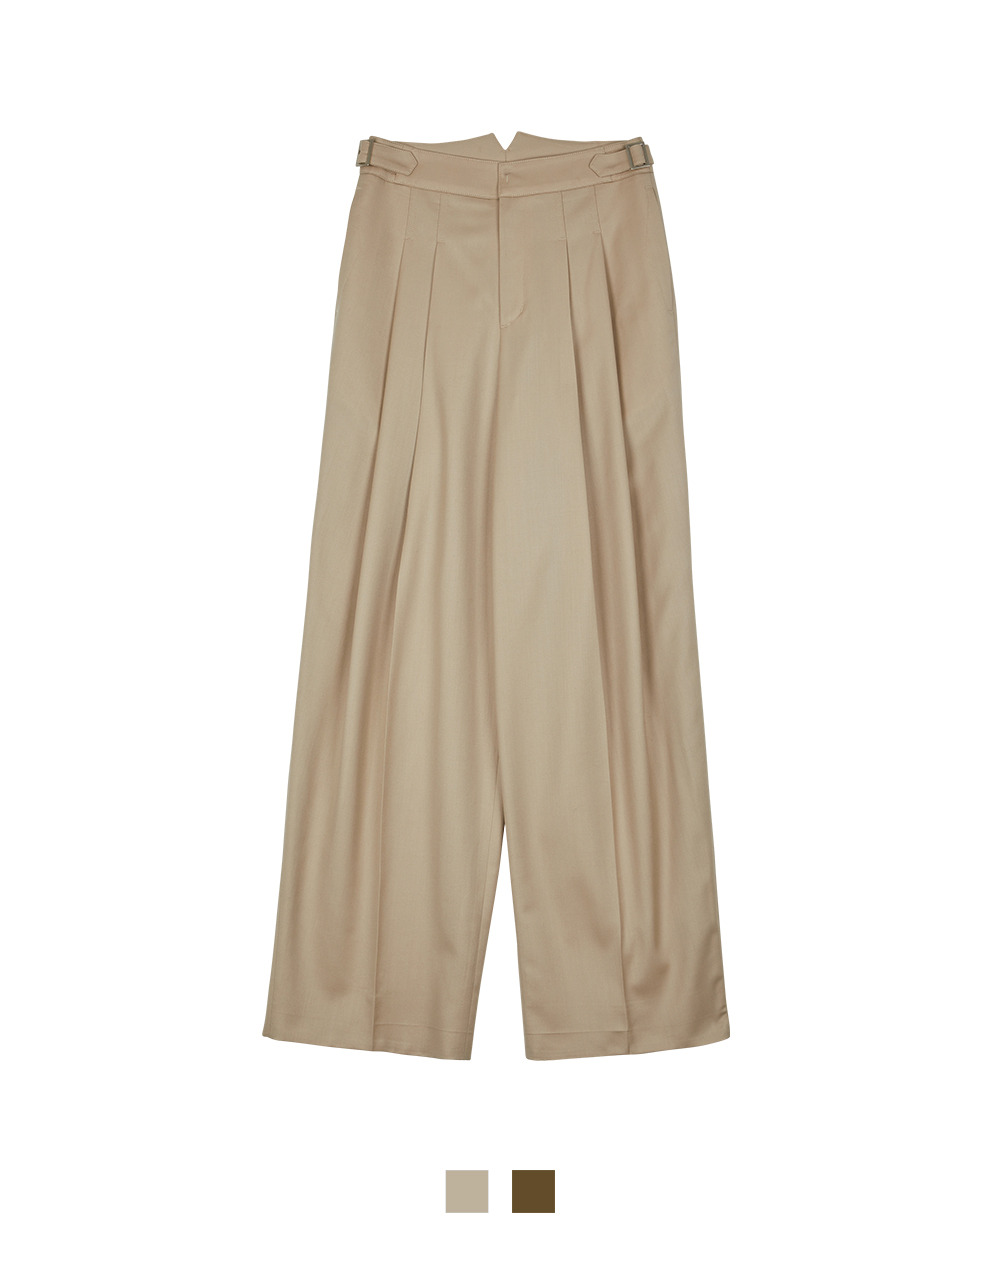 GBH APPAREL ADULT  Wool Wide Pants  (2 COLORS)